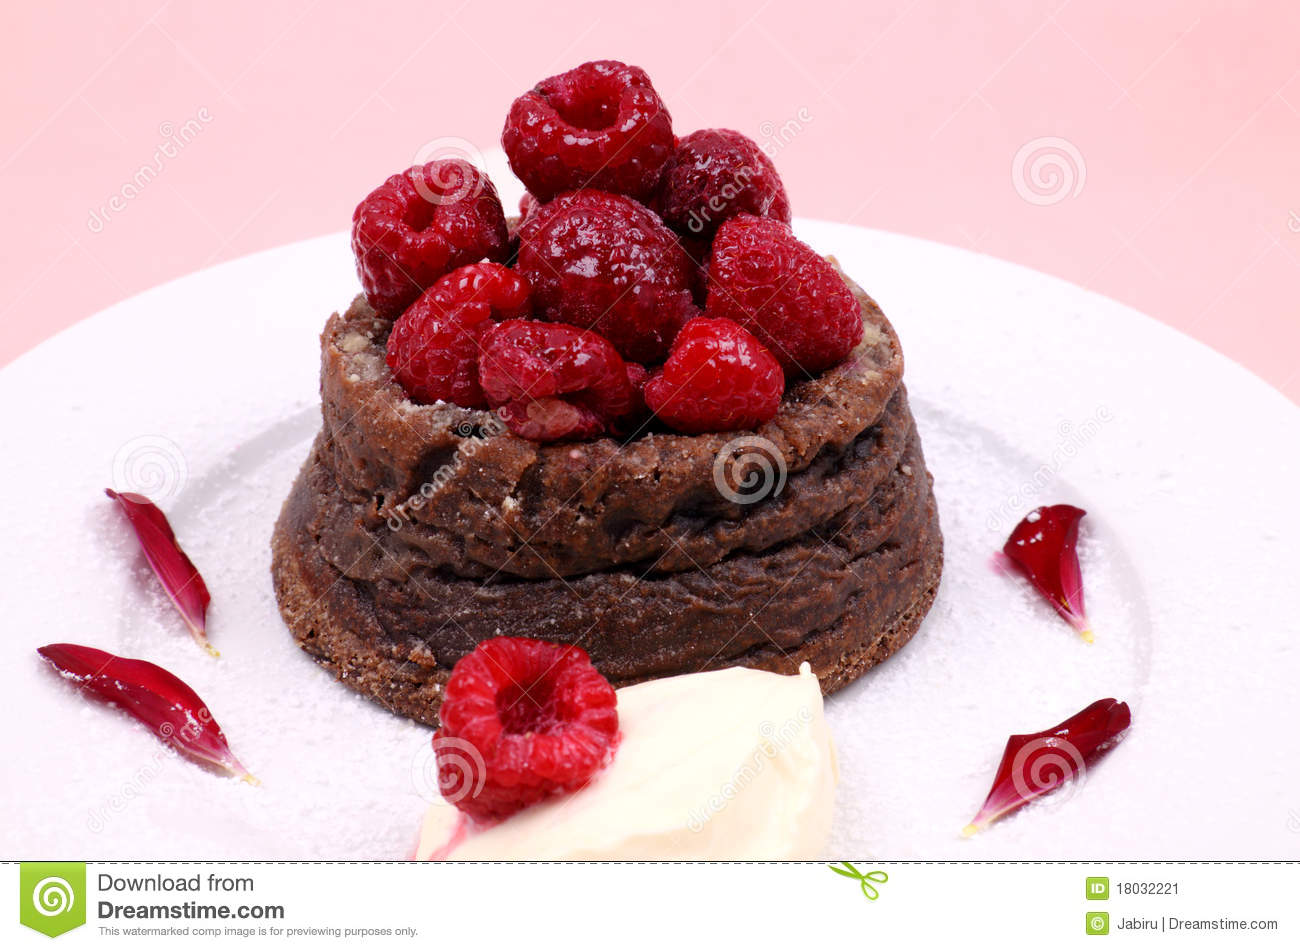 Raspberry Chocolate Dessert Stock Image Image 18032221